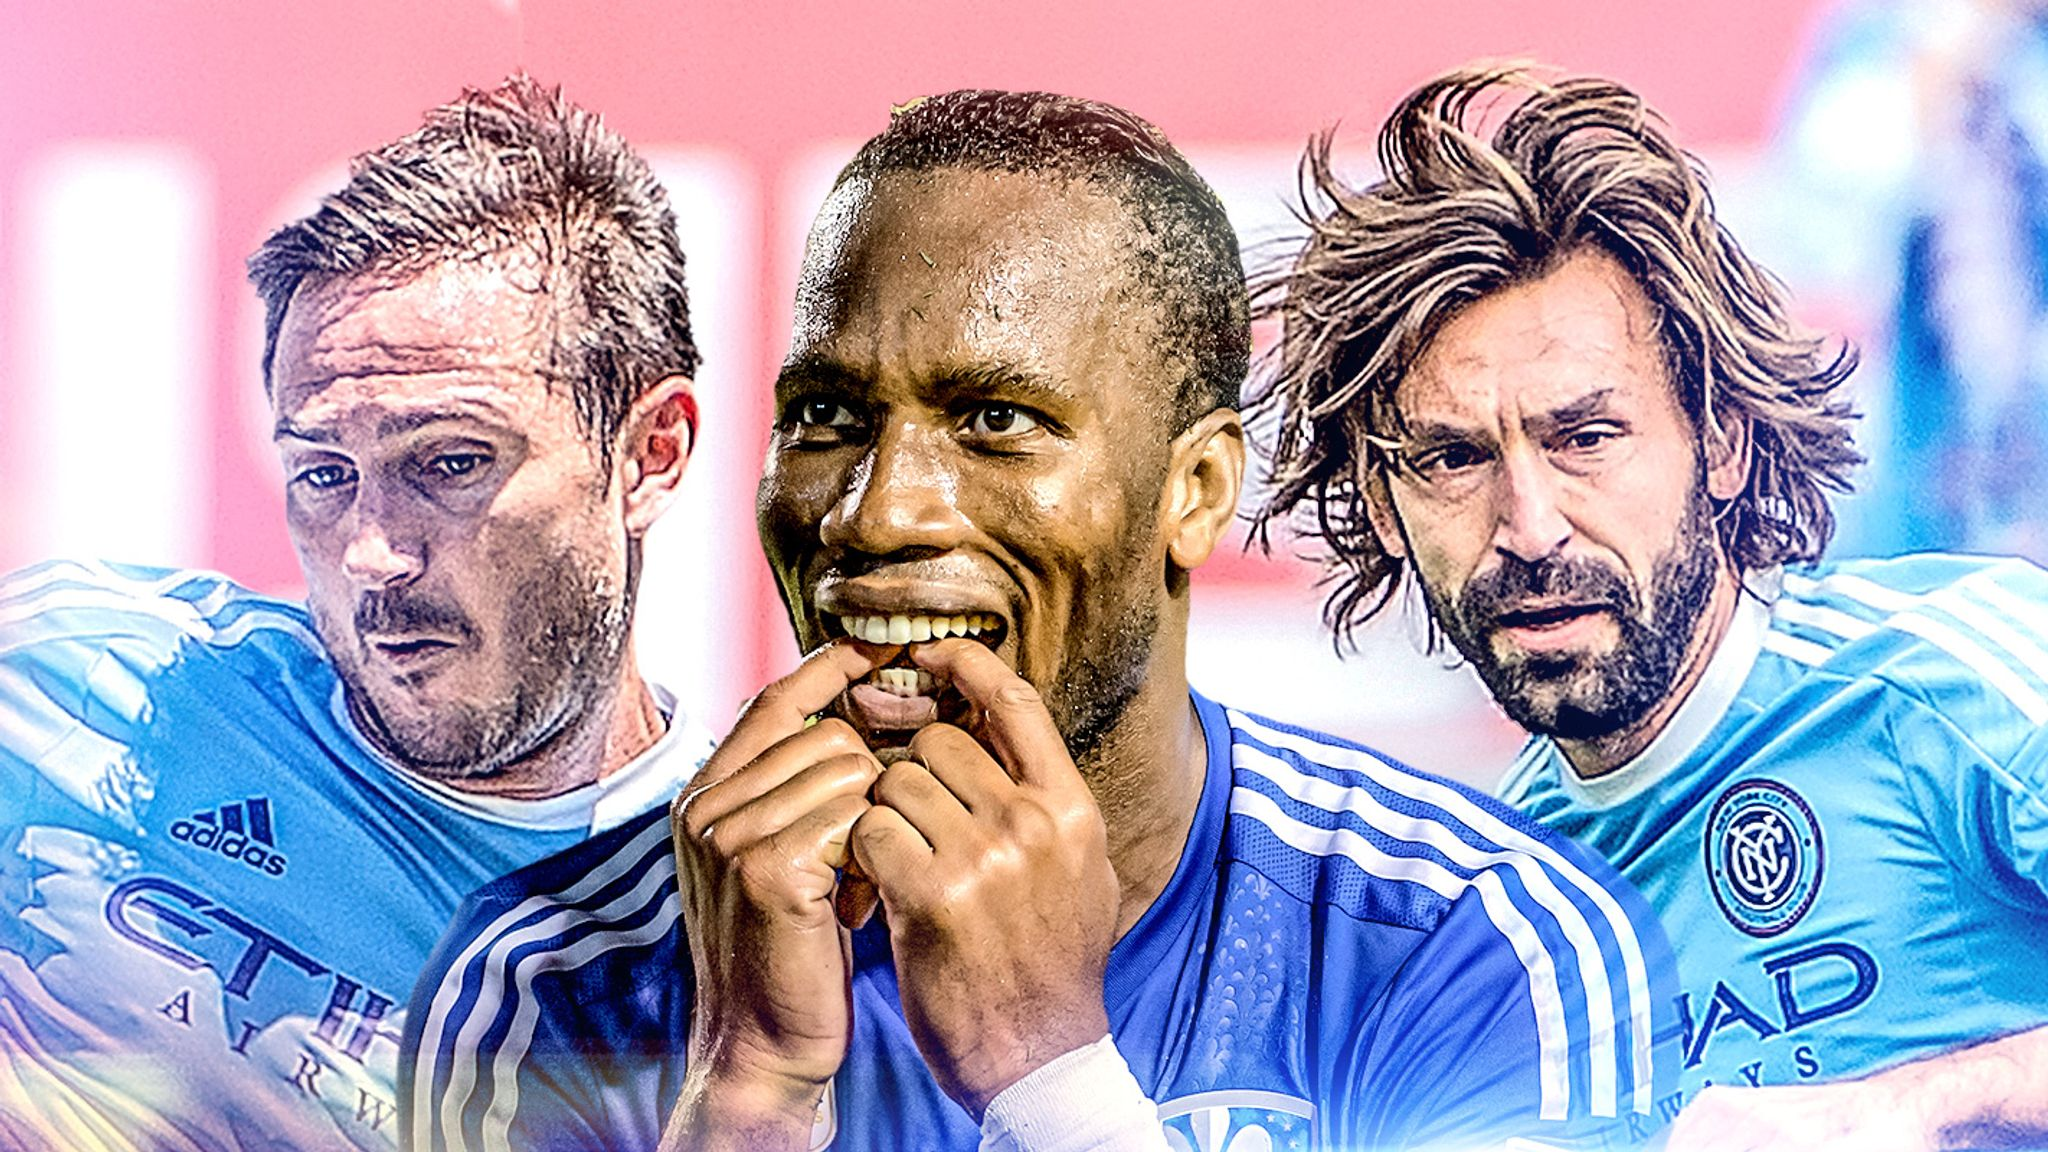 MLS play-offs: Steven Gerrard and Frank Lampard out, Didier Drogba